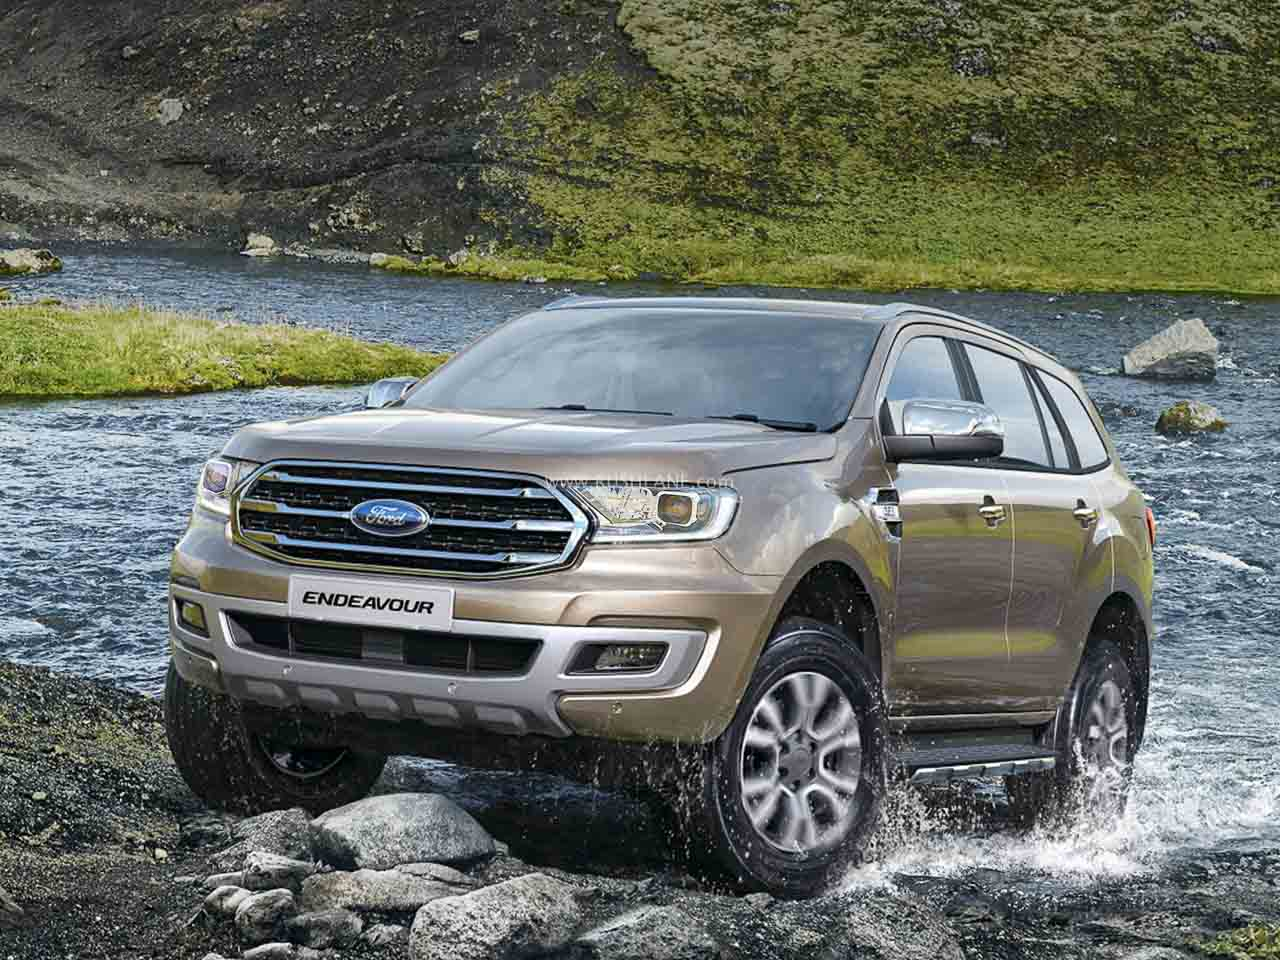 Facelifted Ford Endeavour BS6